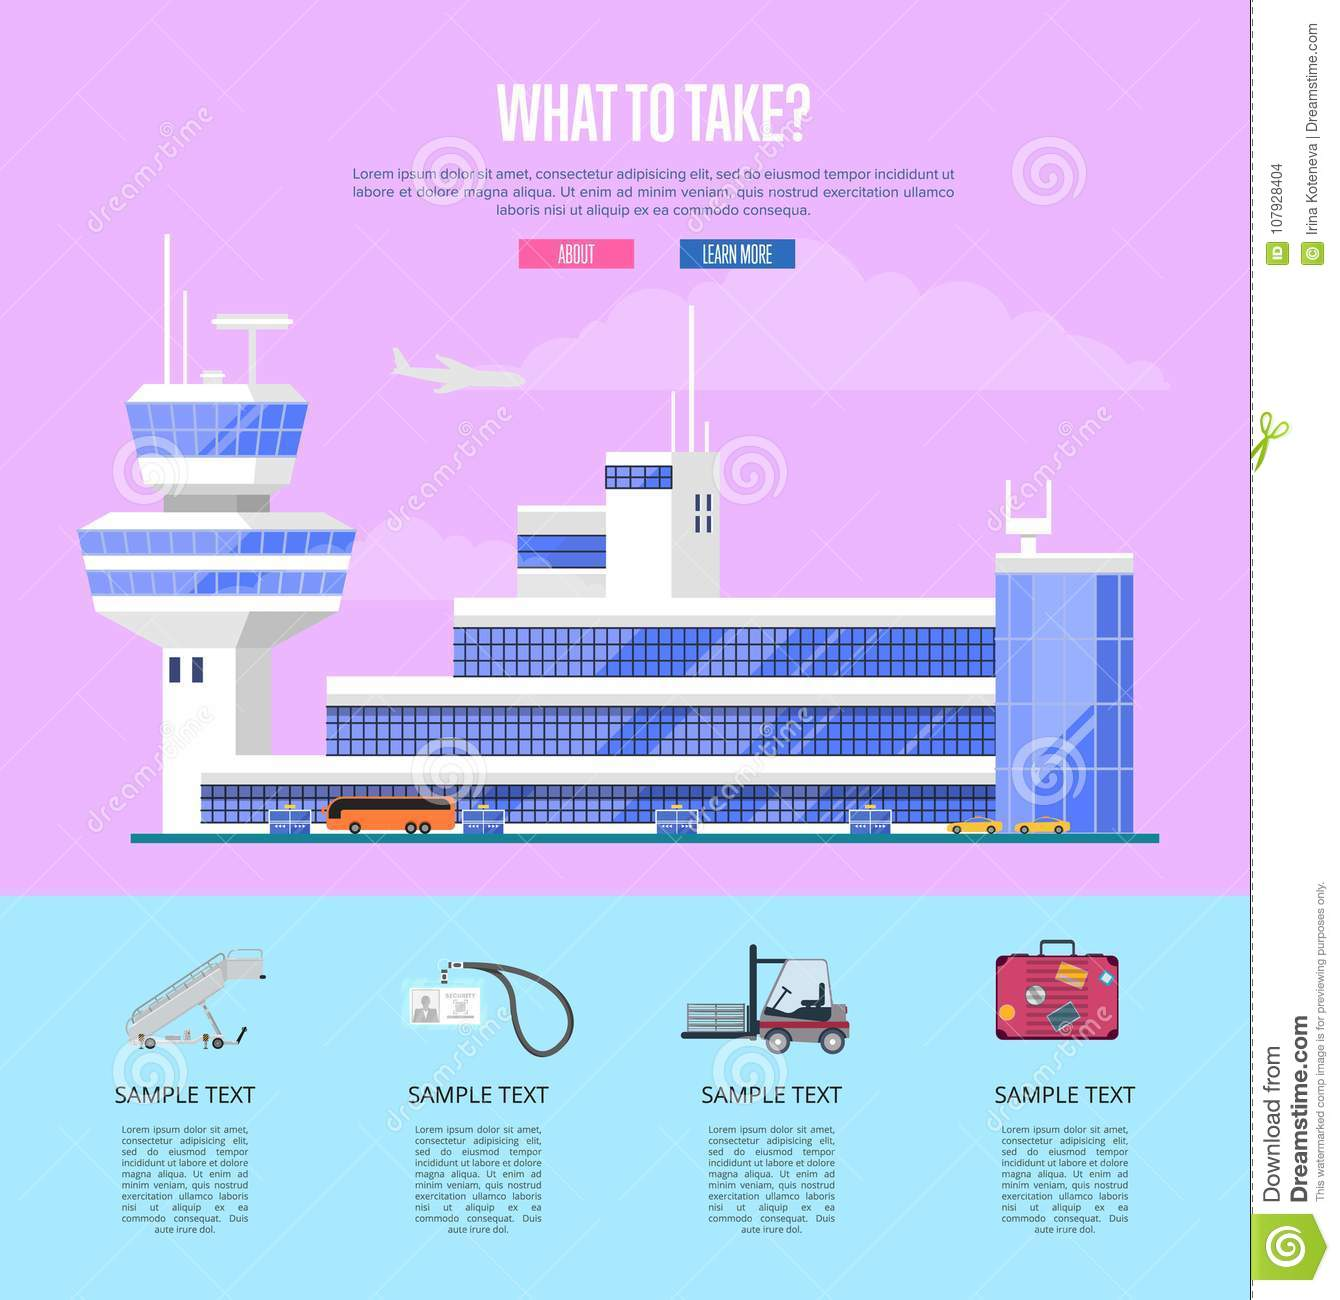 What to take concept for commercial airline